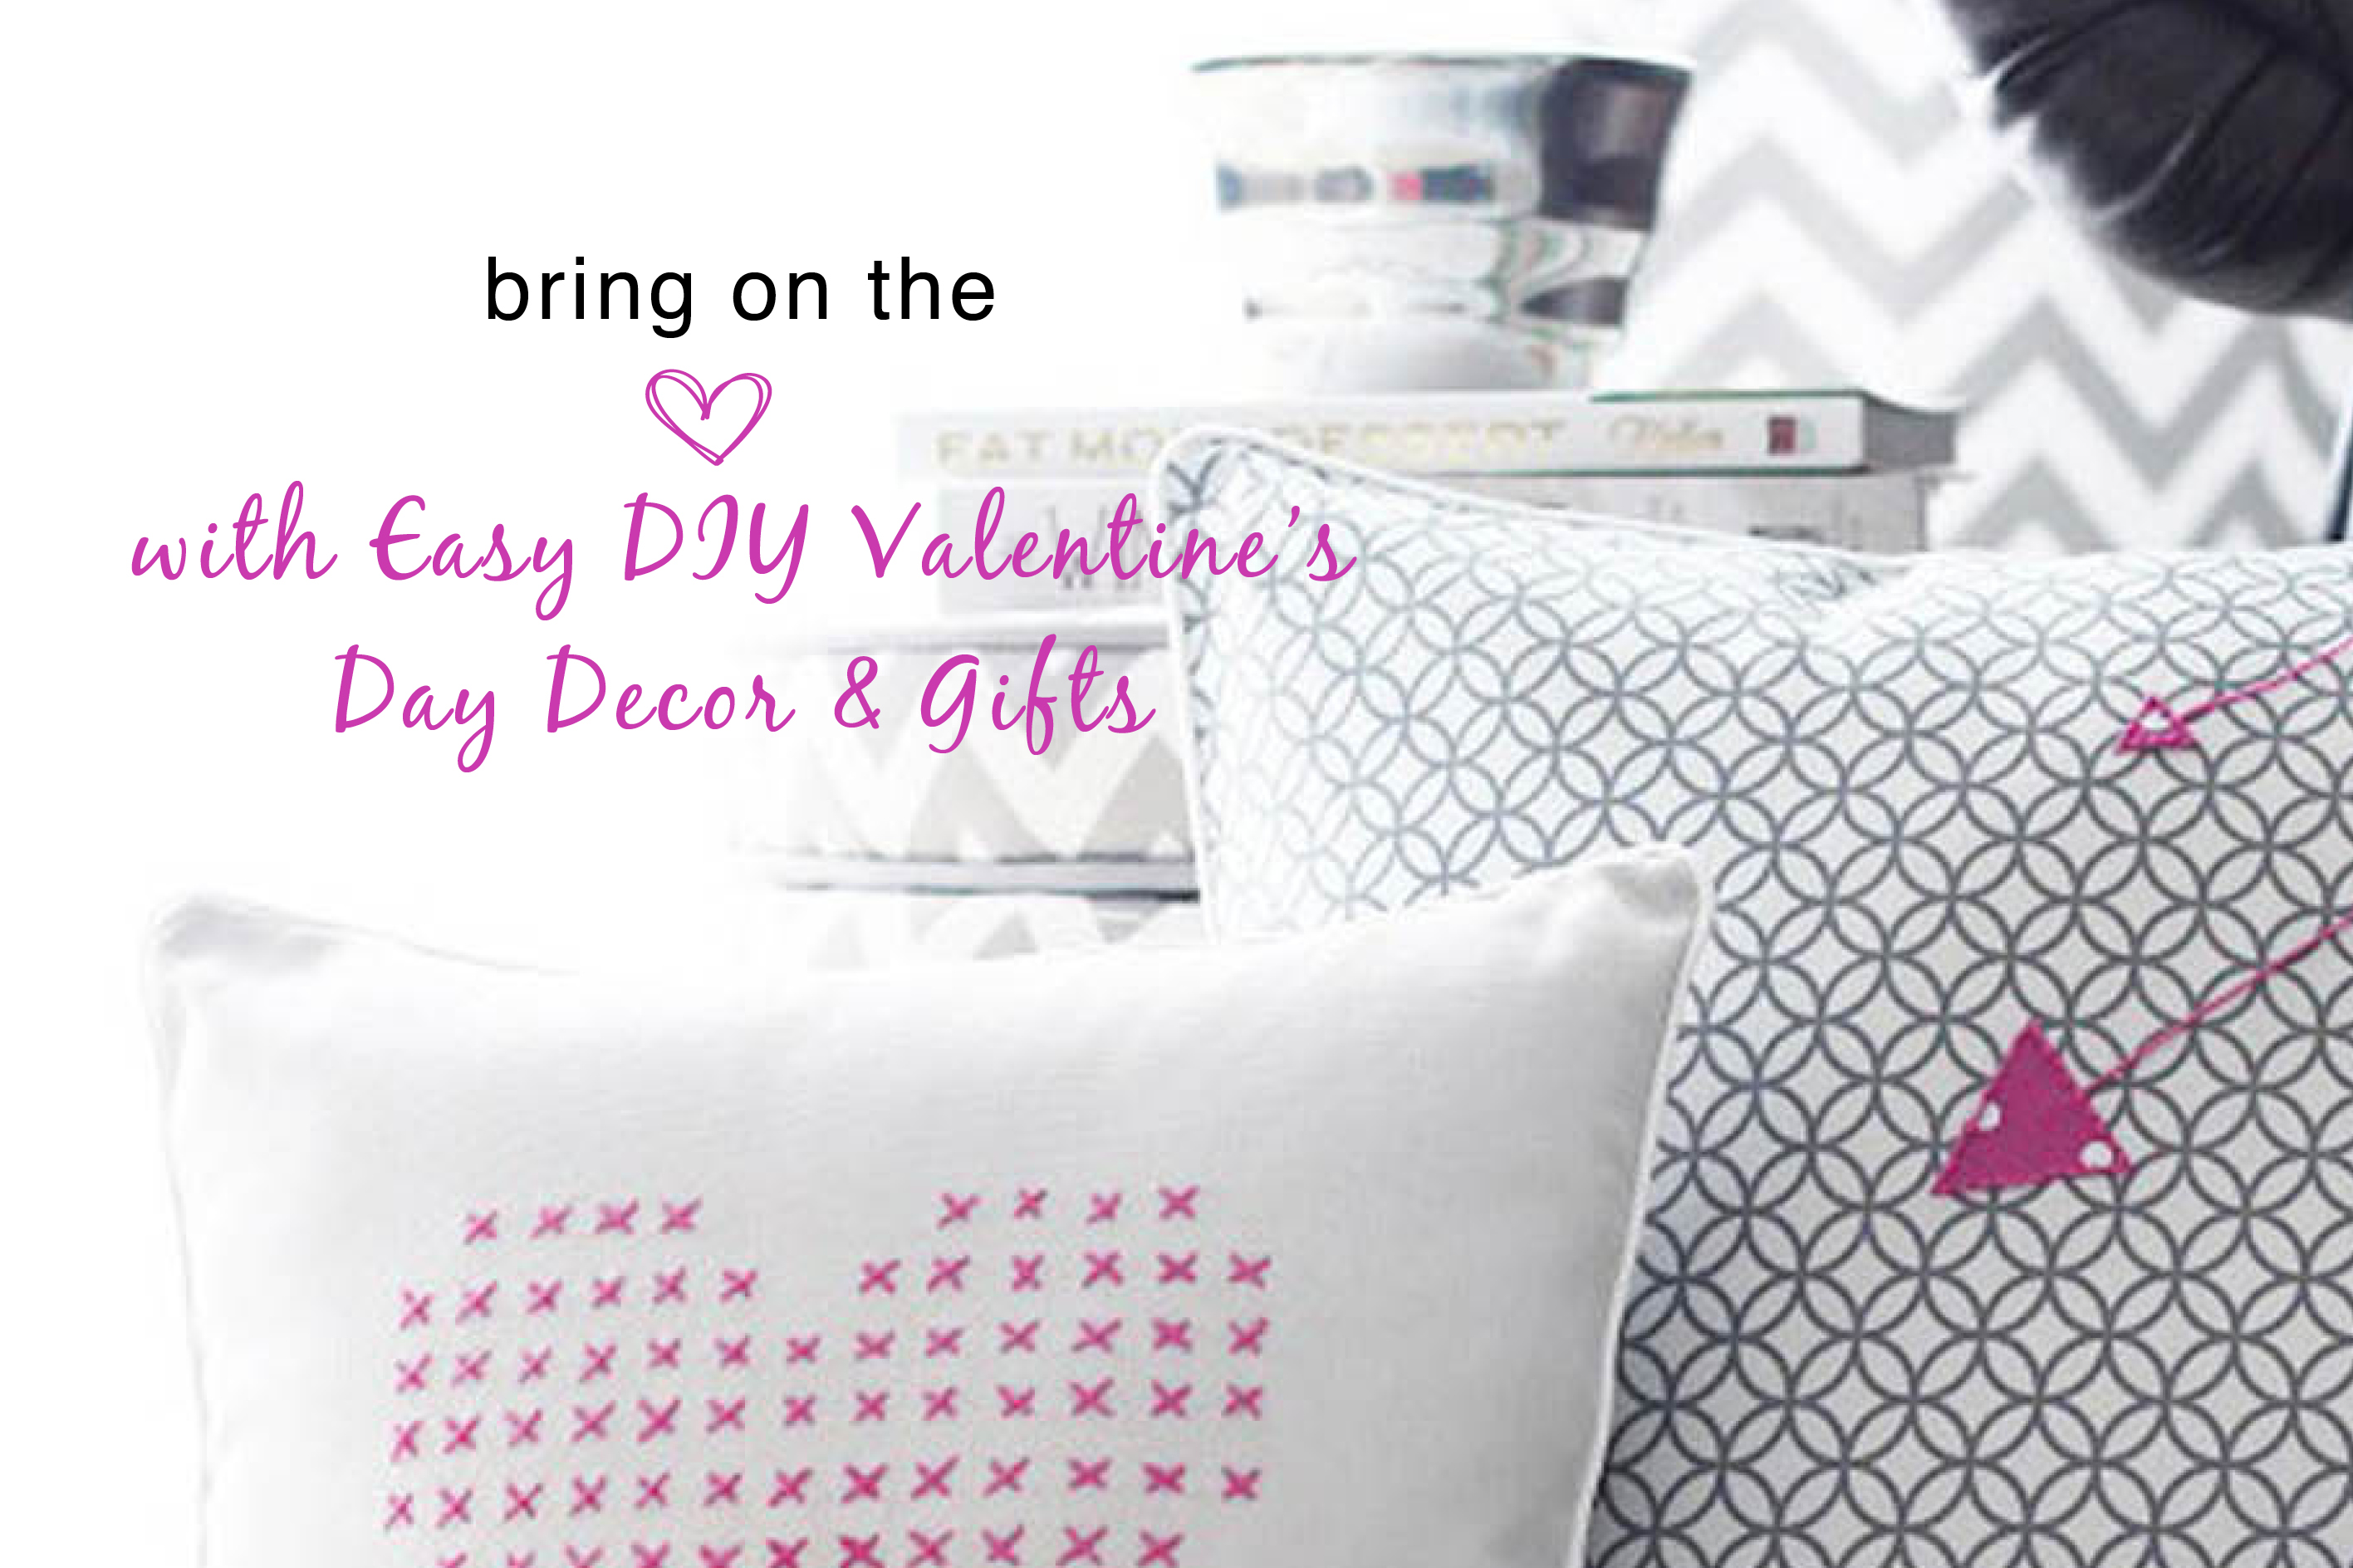 Bring On the Love With Easy DIY Valentine's Day Decor & Gifts